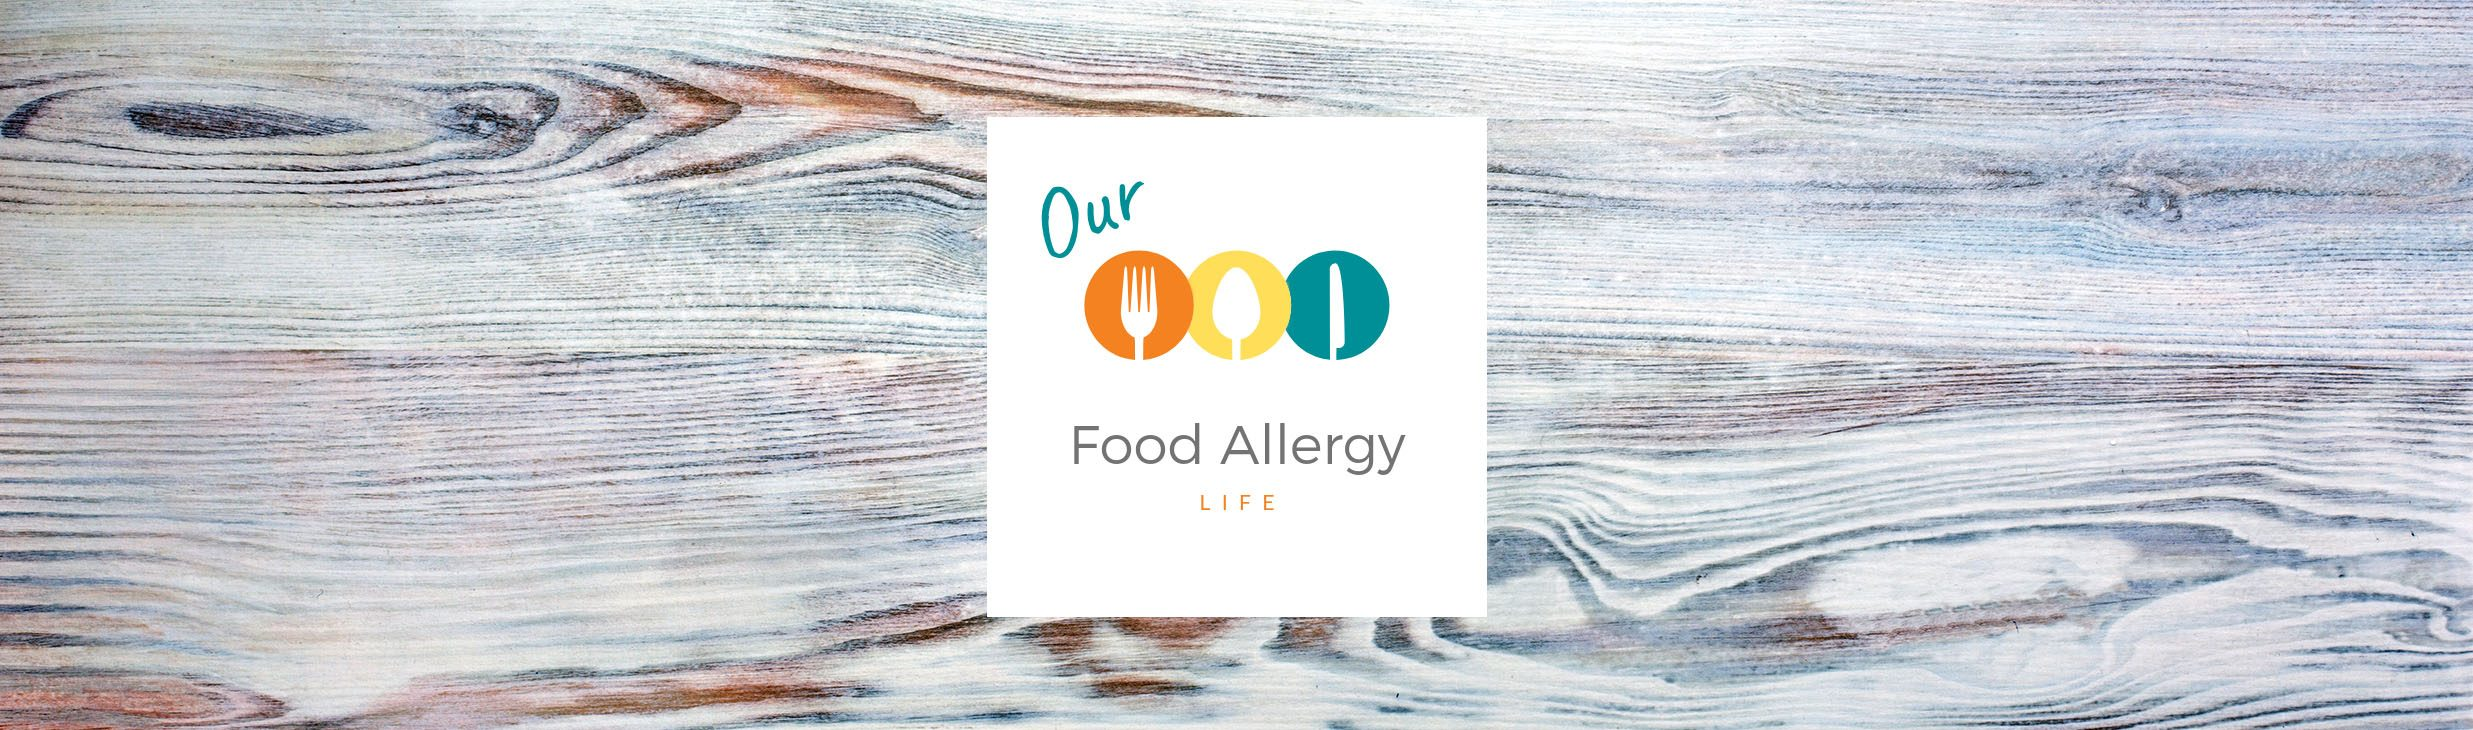 Our Food Allergy Life